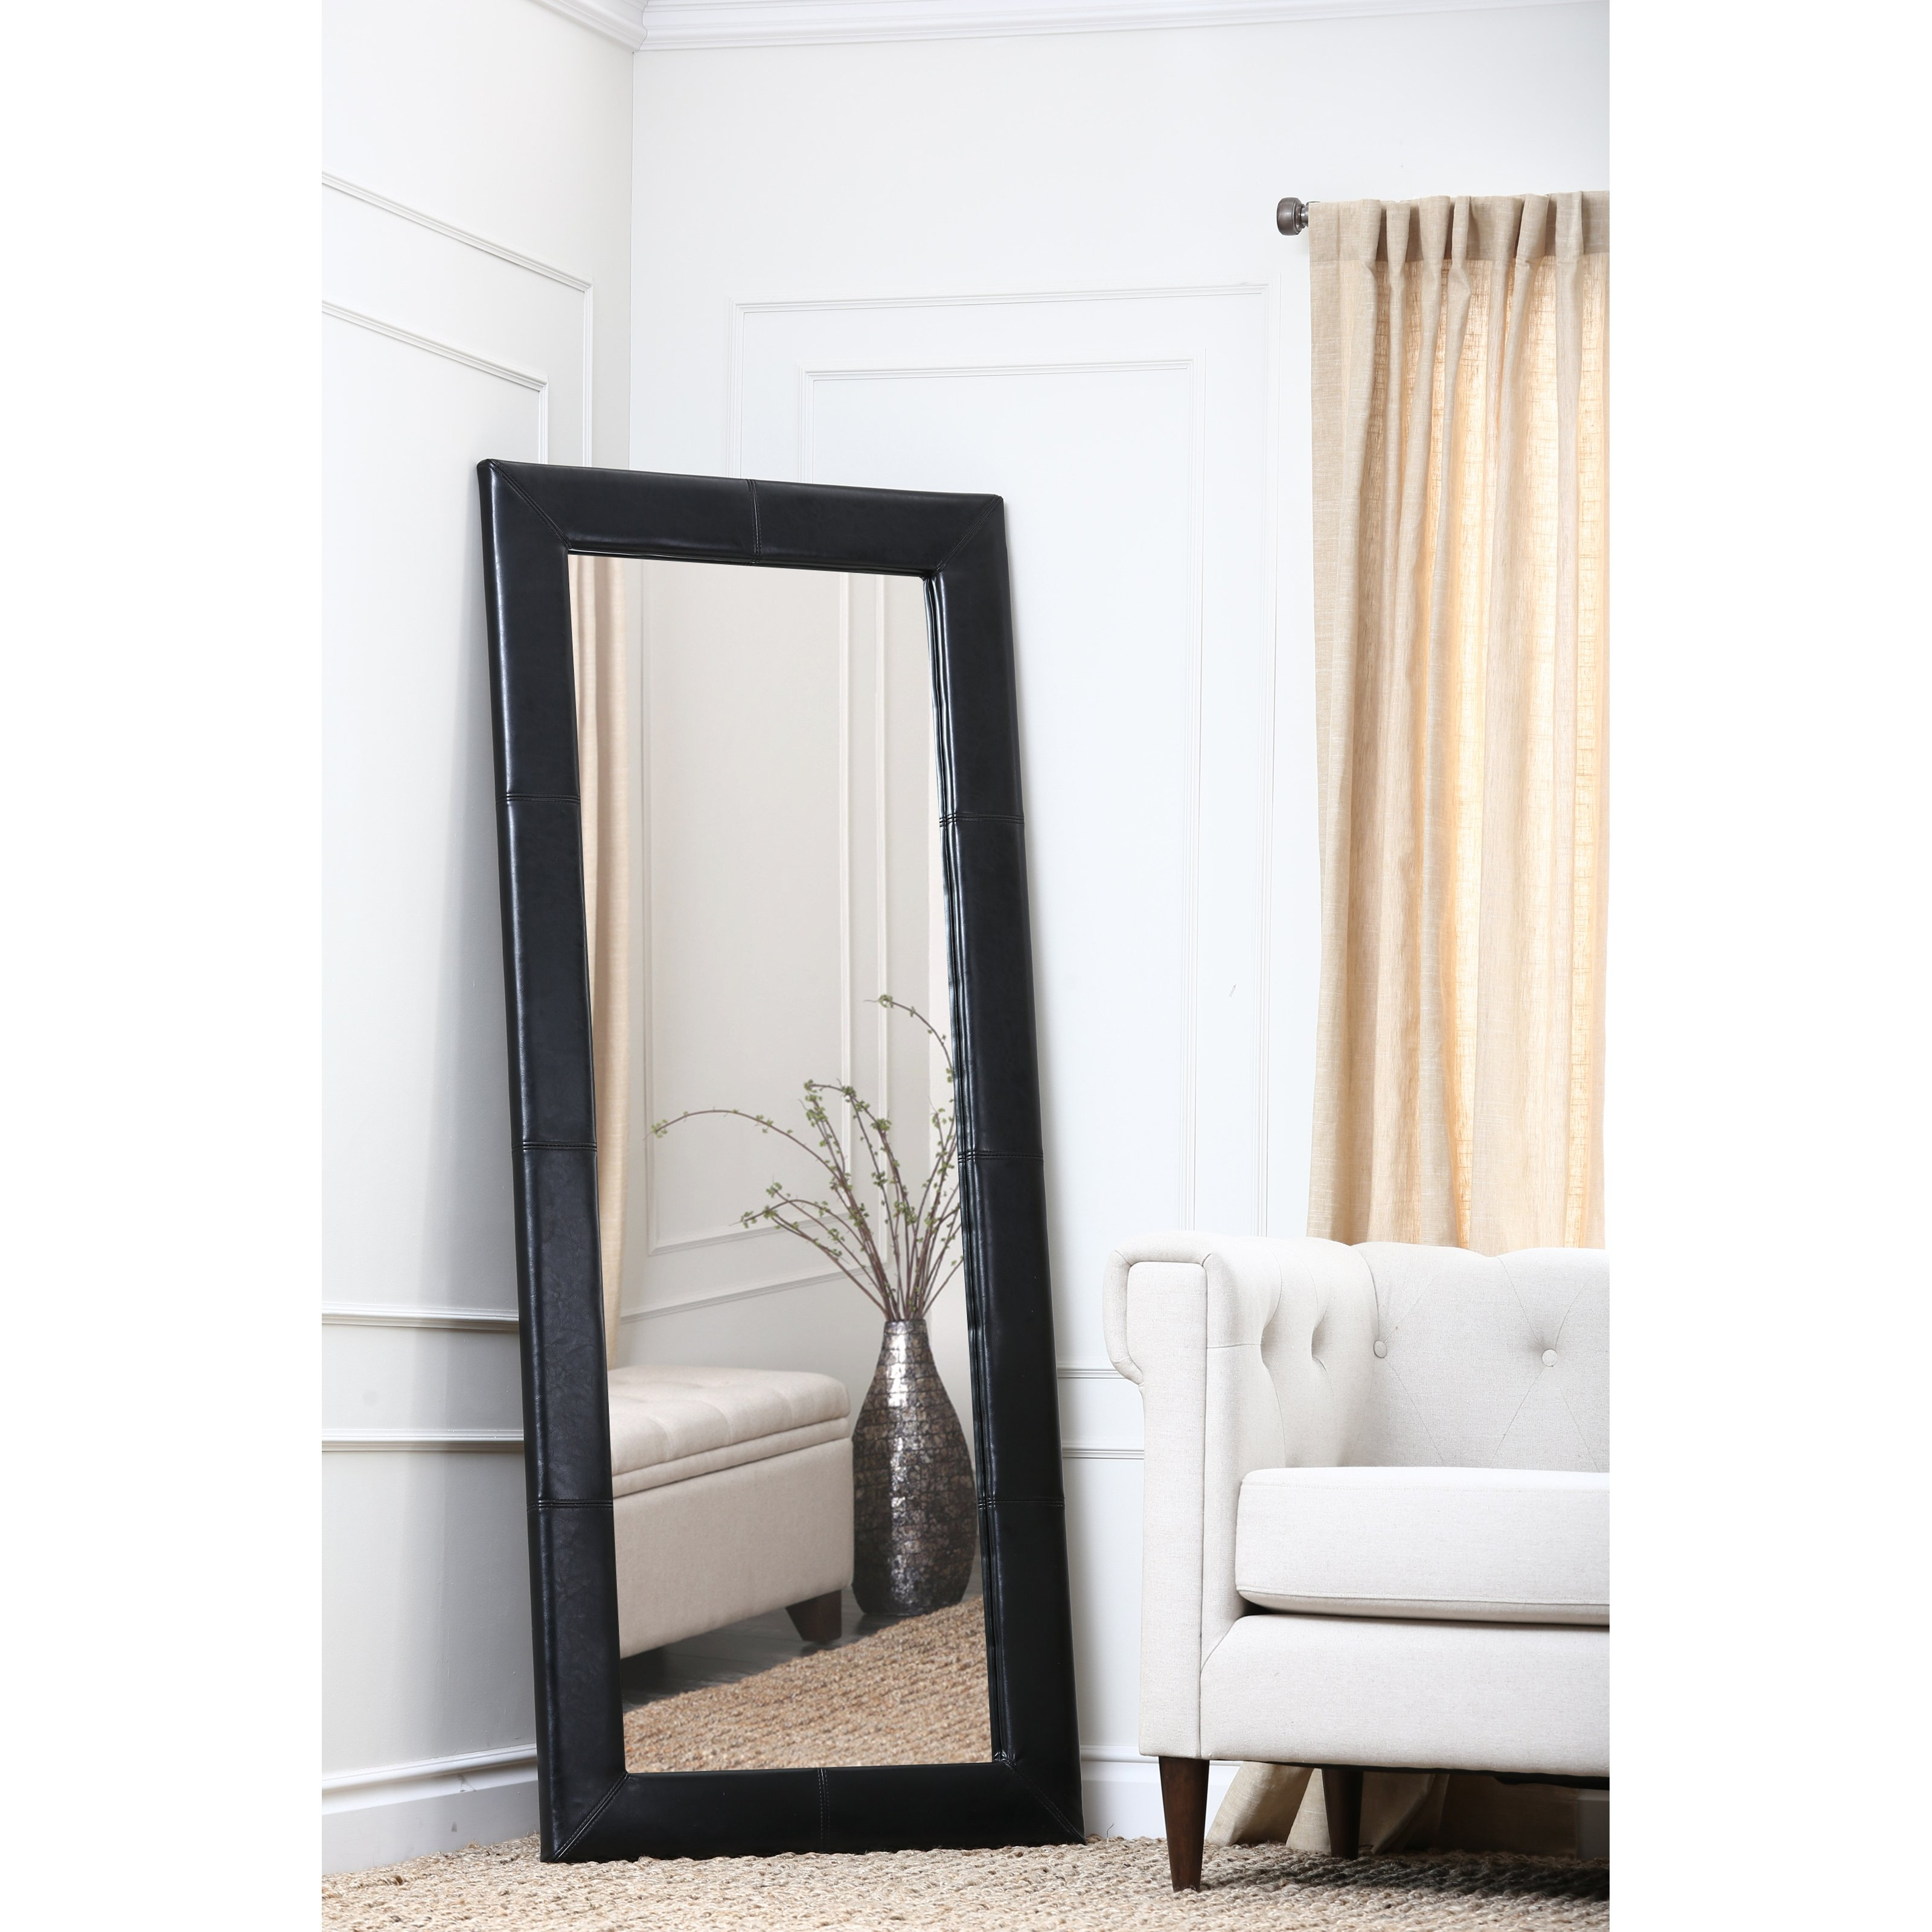 Flooring Tall Standing Mirrors Leaning Floor Mirror Full Length With Regard To Large Mirrors Cheap (Image 10 of 15)